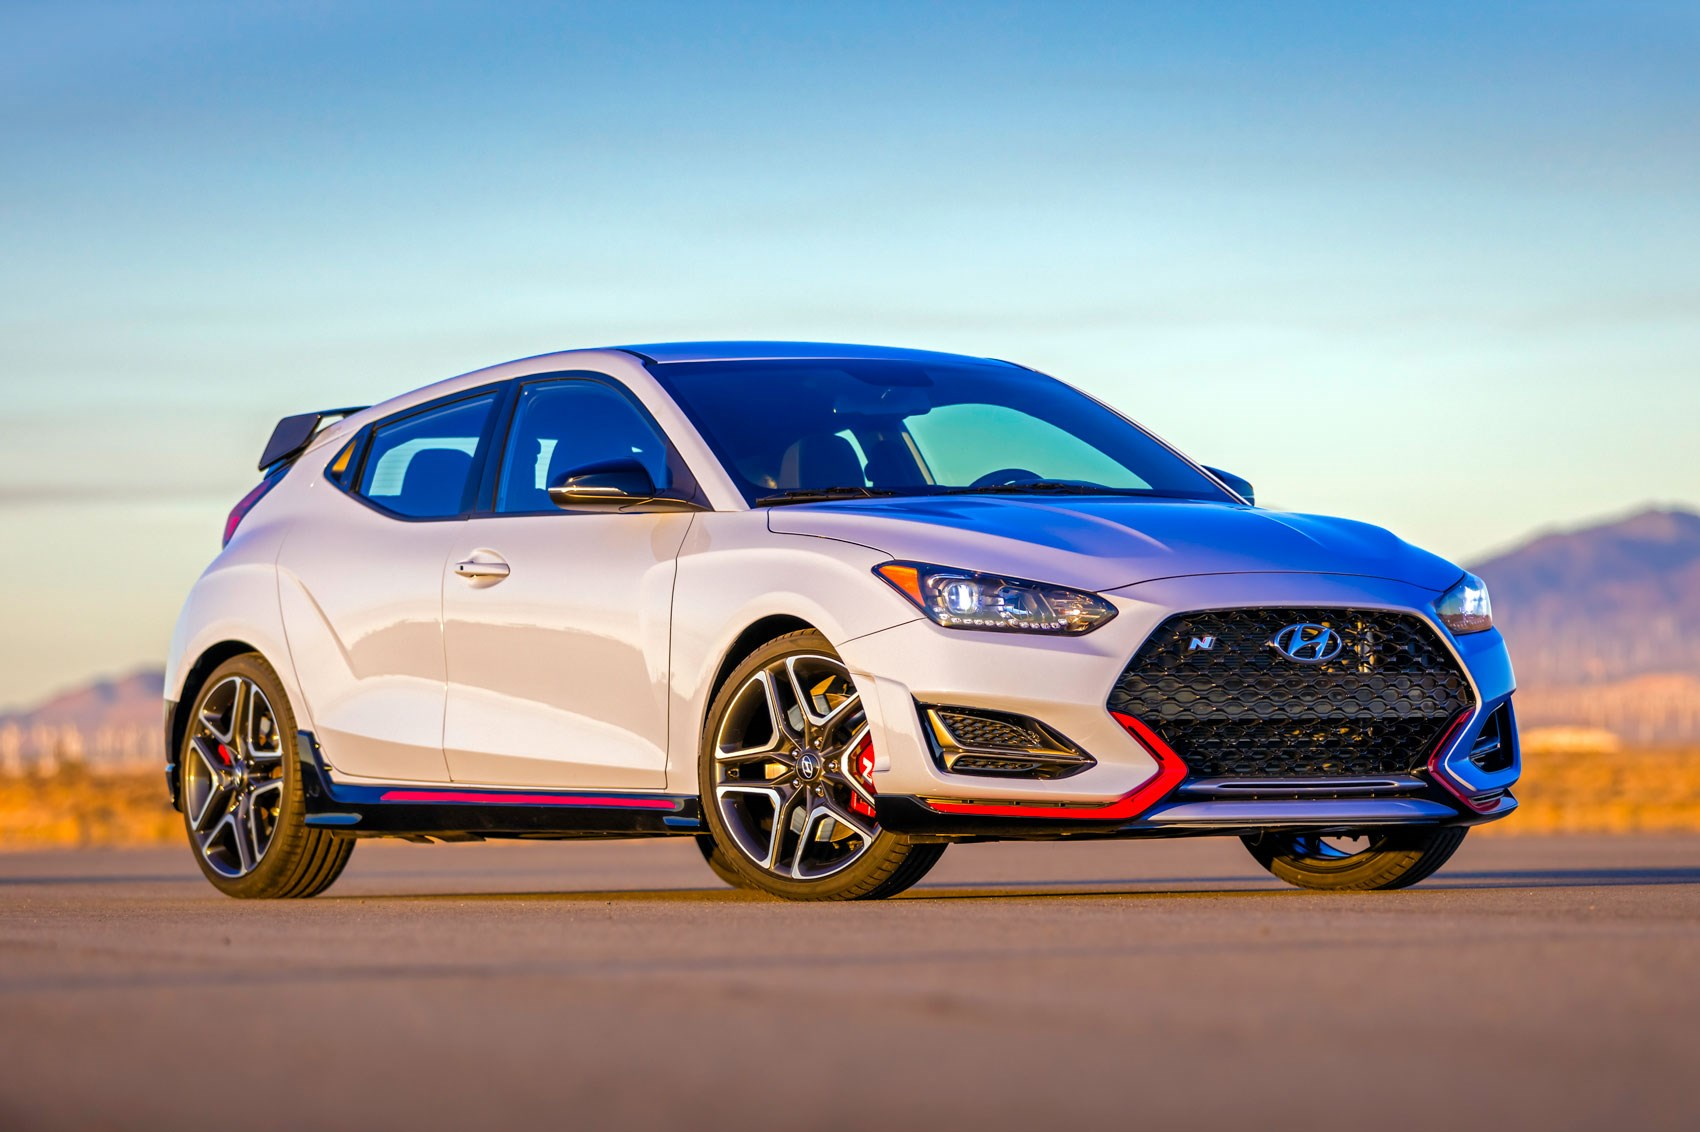 New Hyundai Veloster 2018 Coupe Blasts Into Naias With Hot N